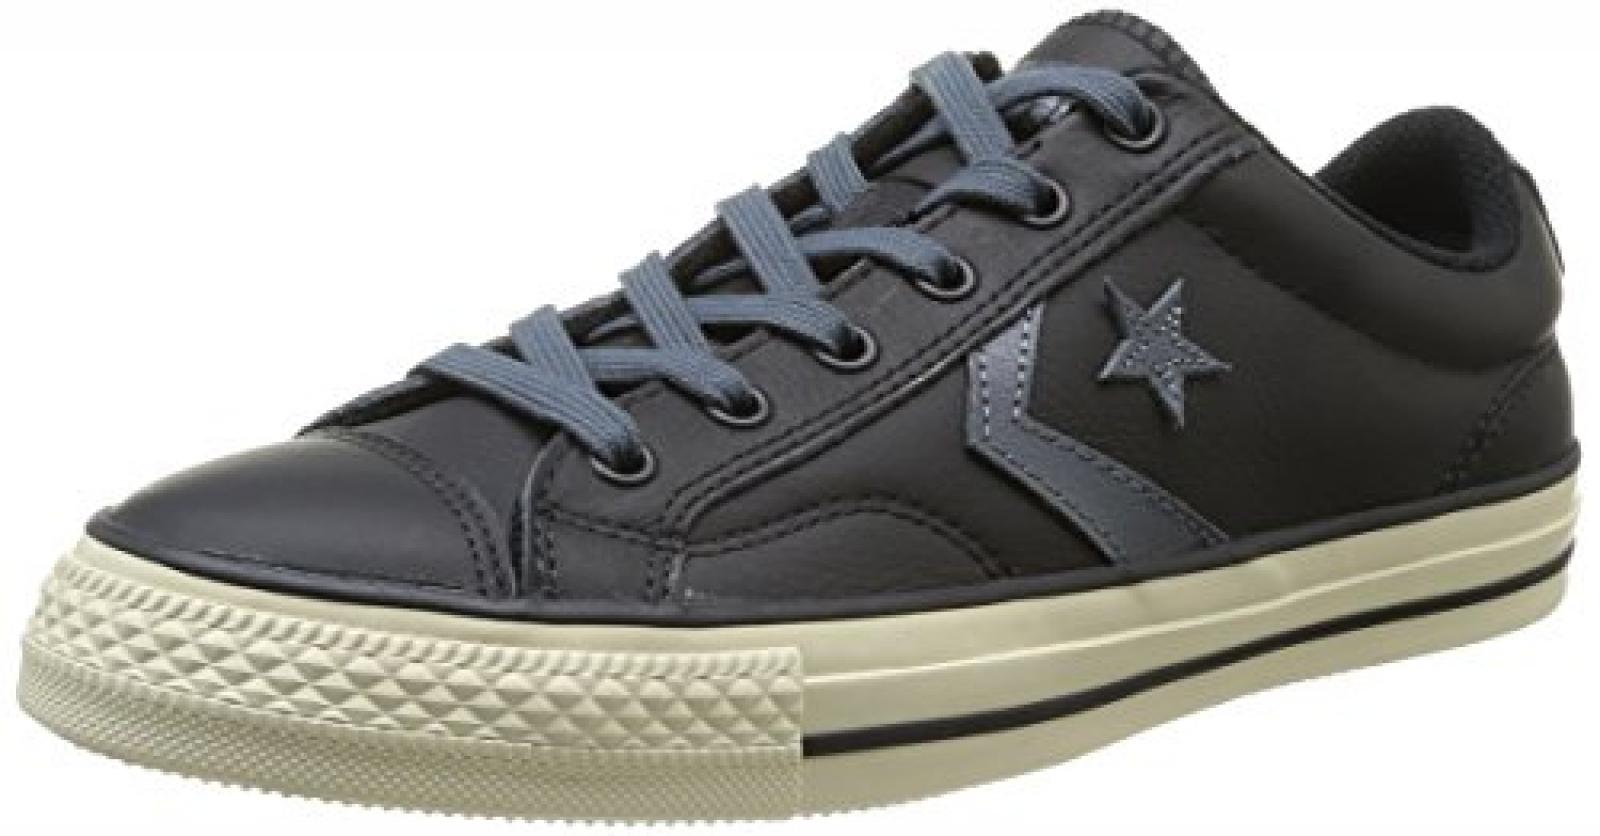 Converse Star Player Adulte Tonal Leather Ox 383160 Unisex - Erwachsene Sneaker